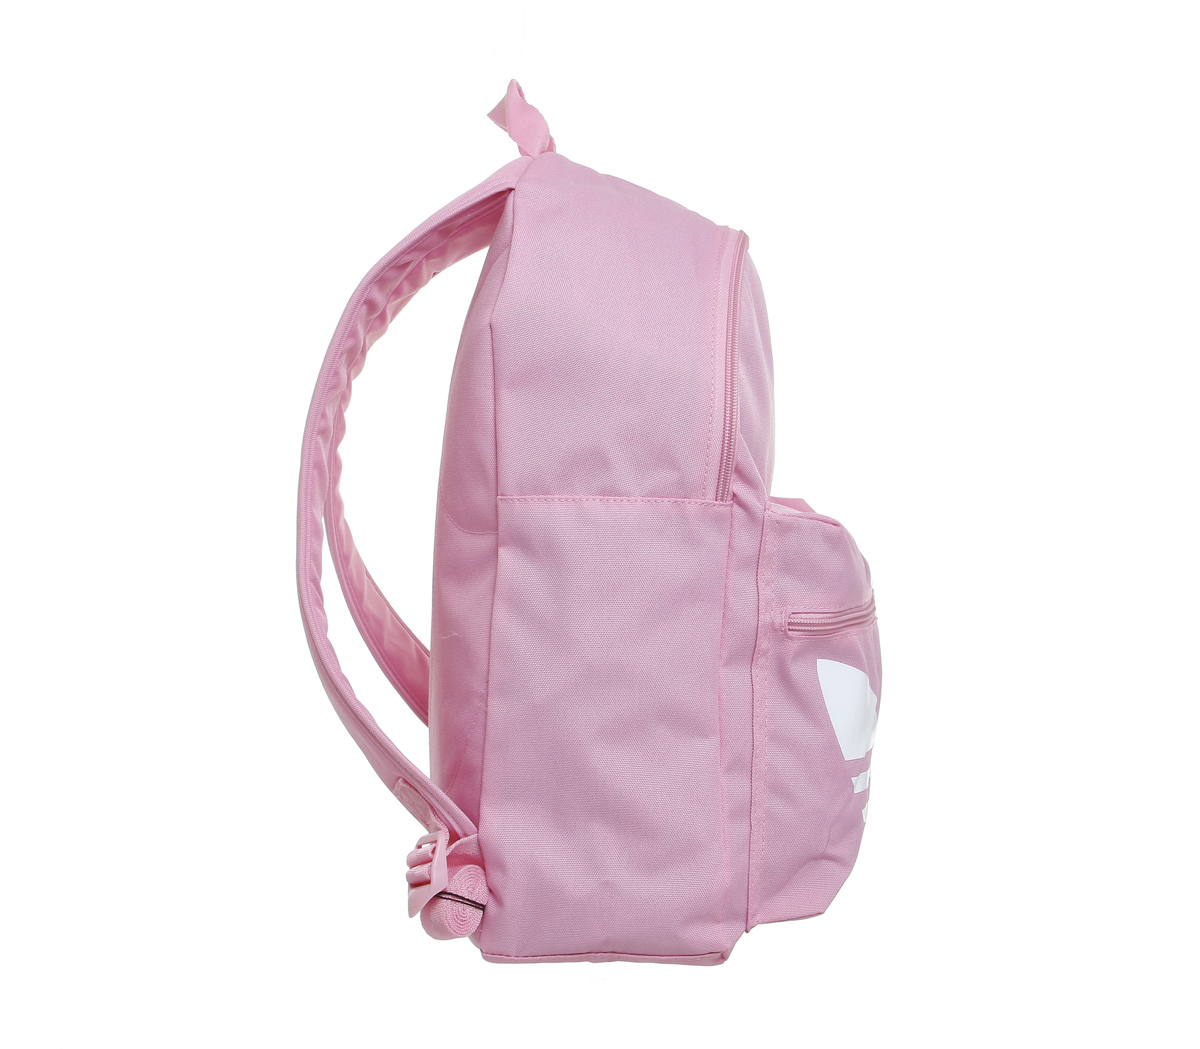 adidas Originals Trefoil Canvas Backpack in Pink  Lyst